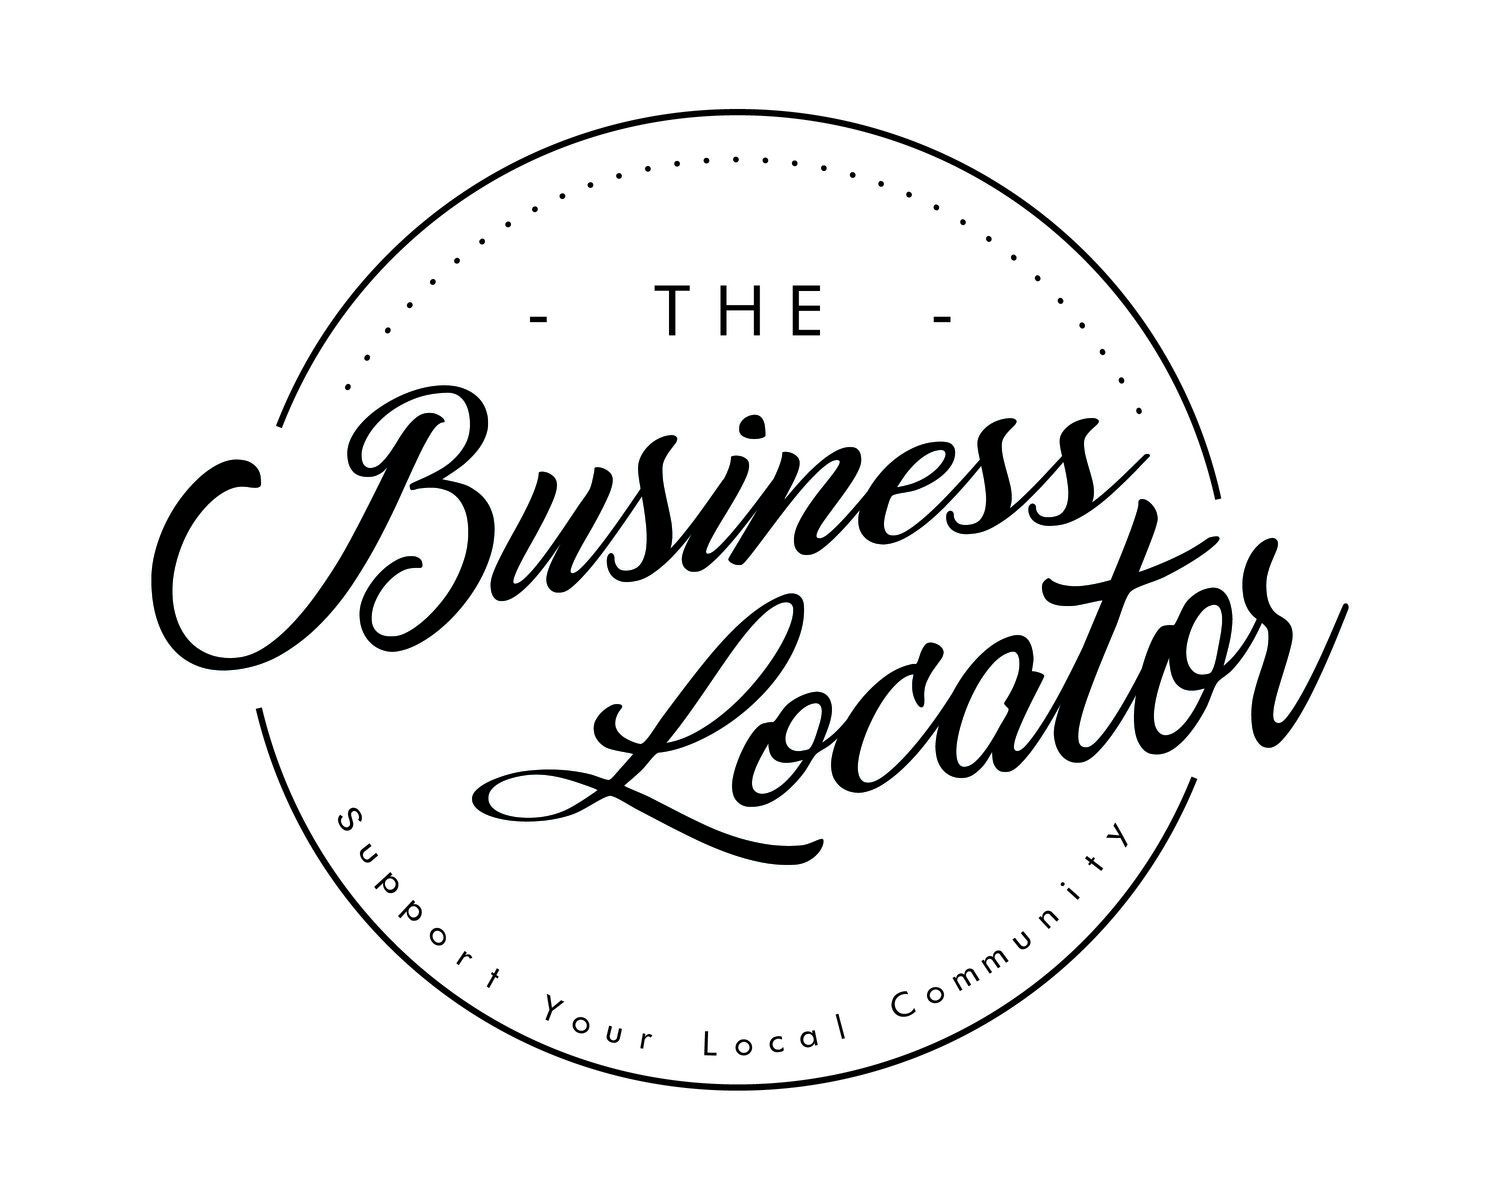 The Business Locator